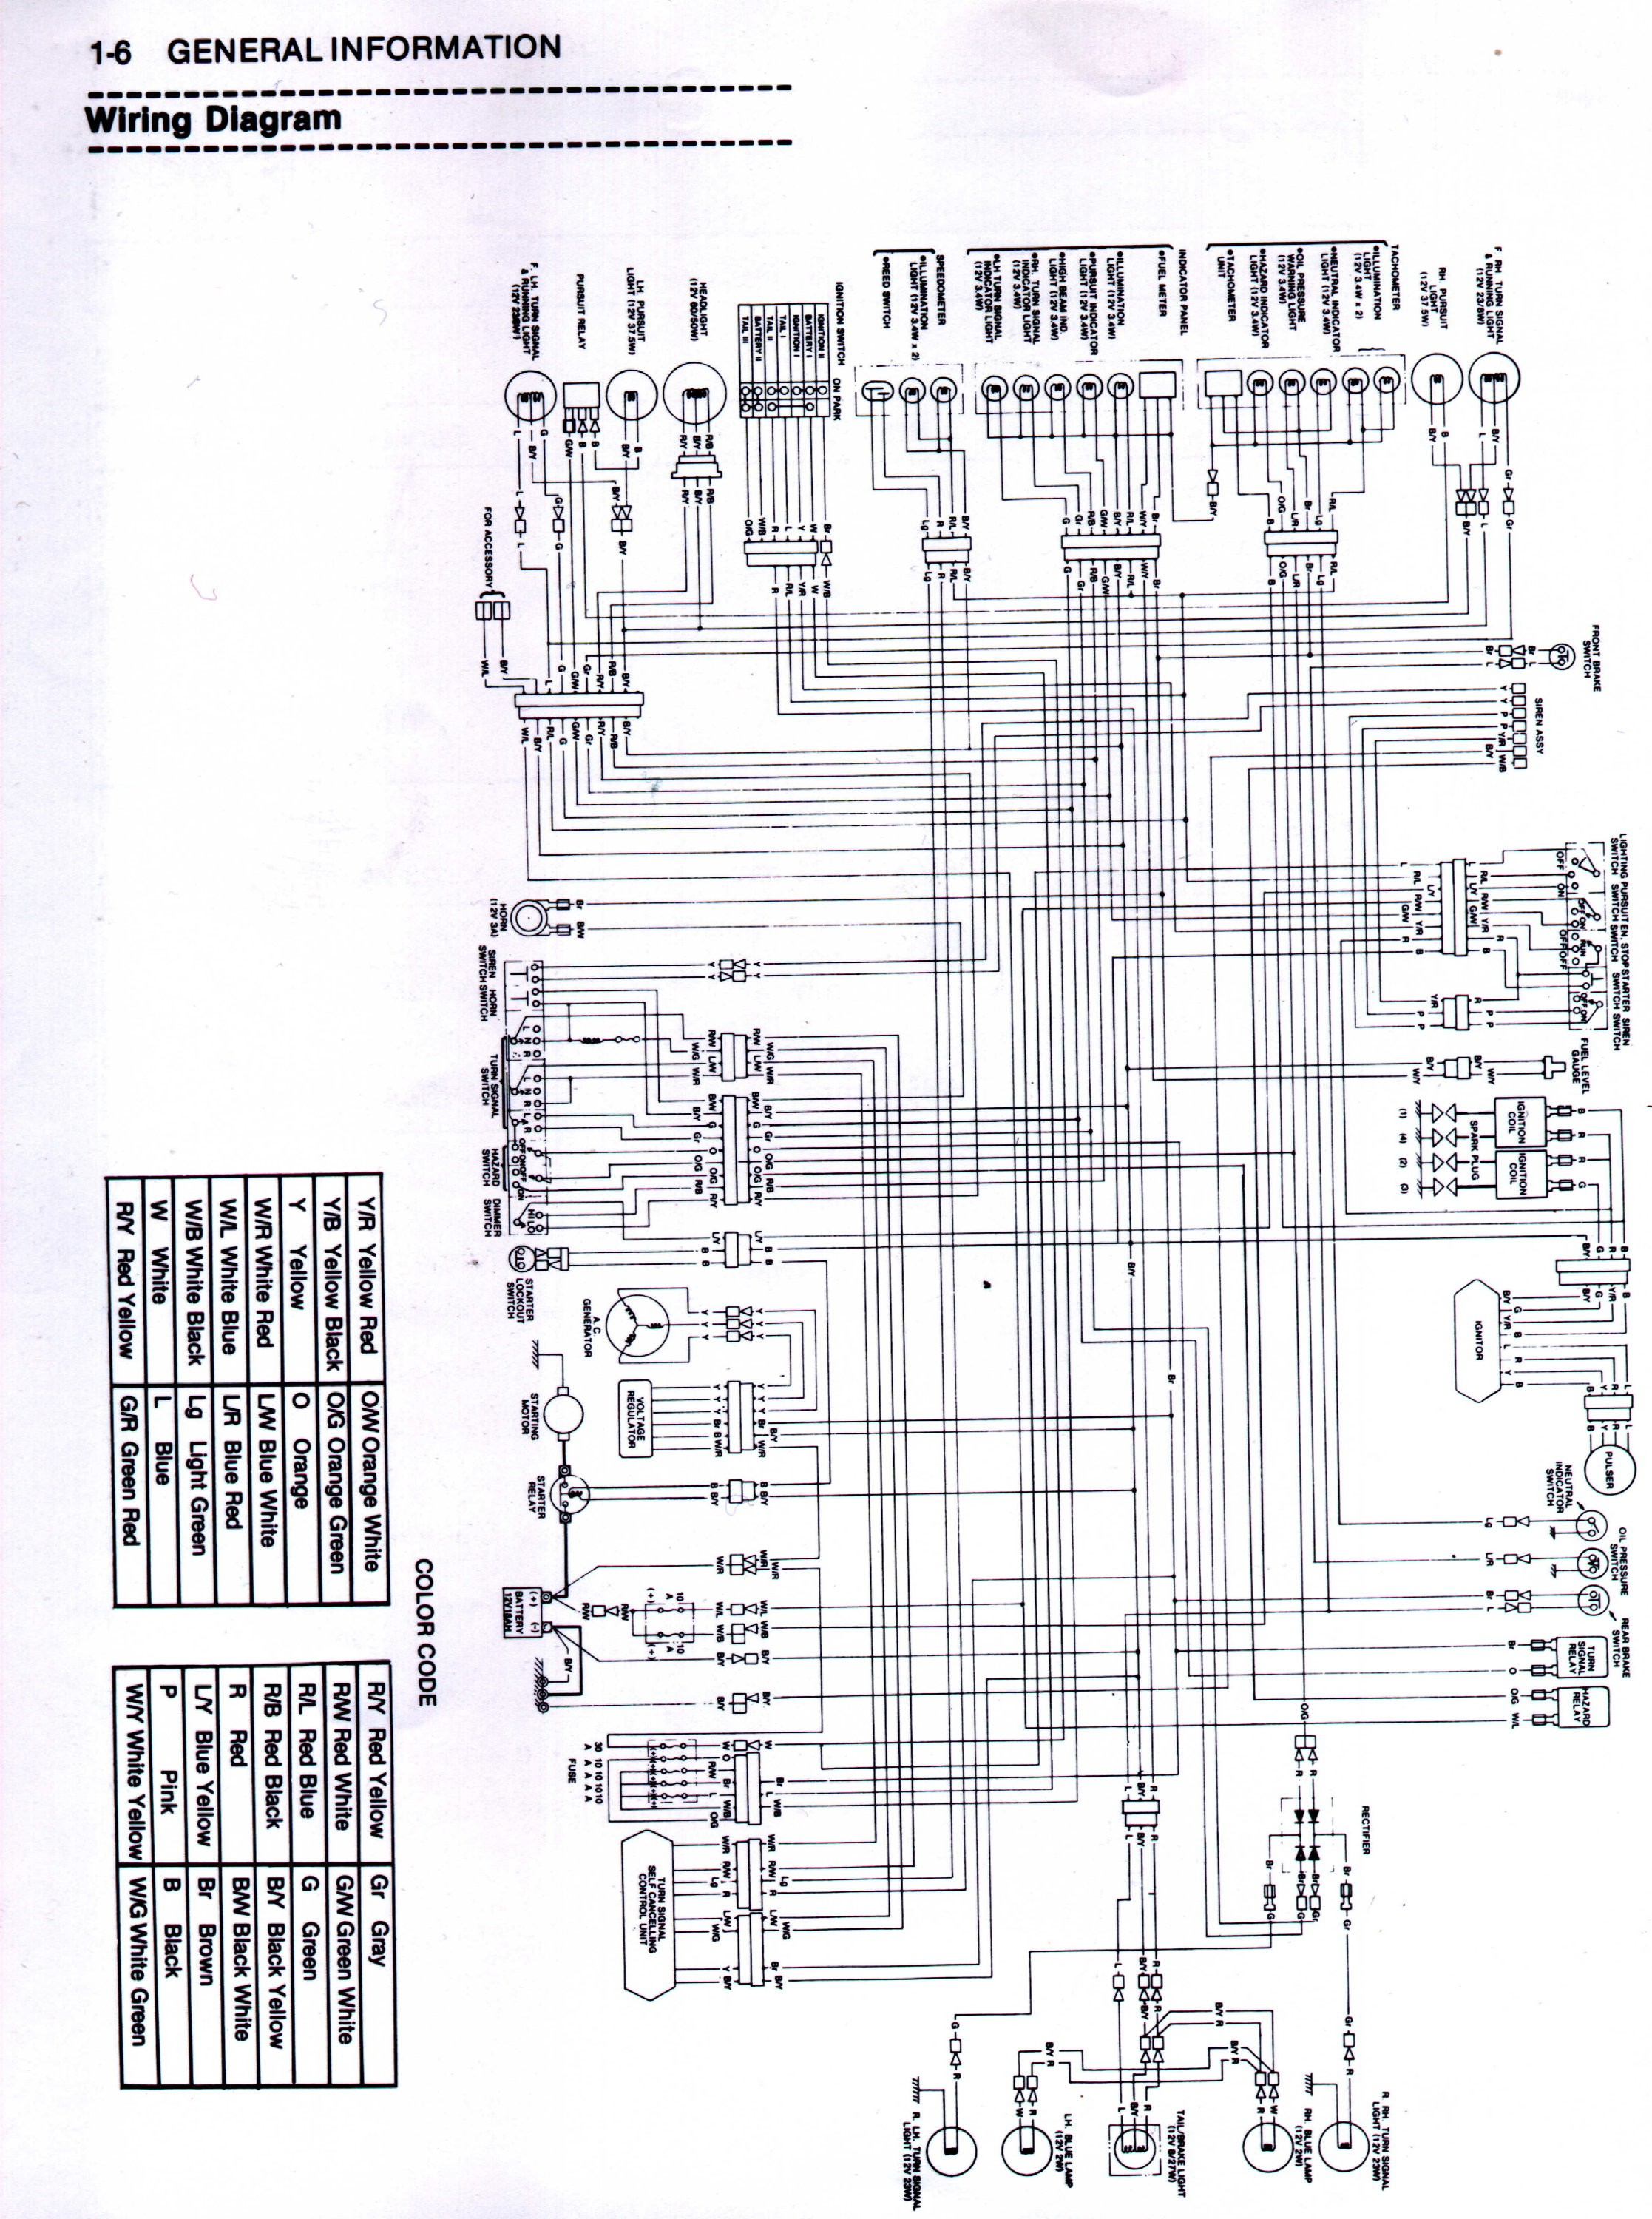 medium resolution of 1982 kdx 400 wire diagram wiring library diagram a4 led circuit diagrams 1982 kdx 400 wire